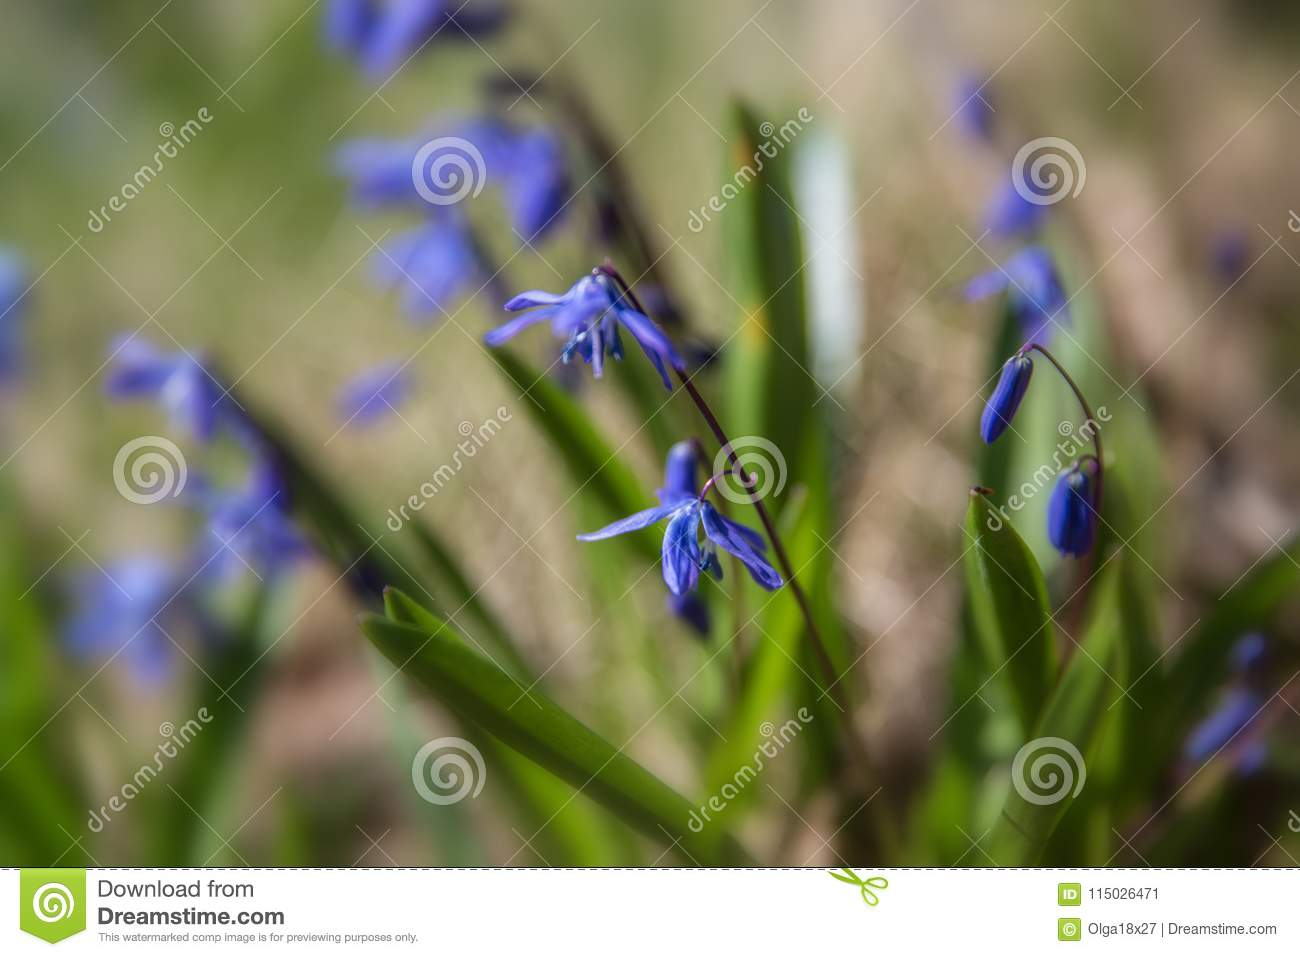 Blue Flowers Of The Scilla Squill Blooming In April Bright Spring